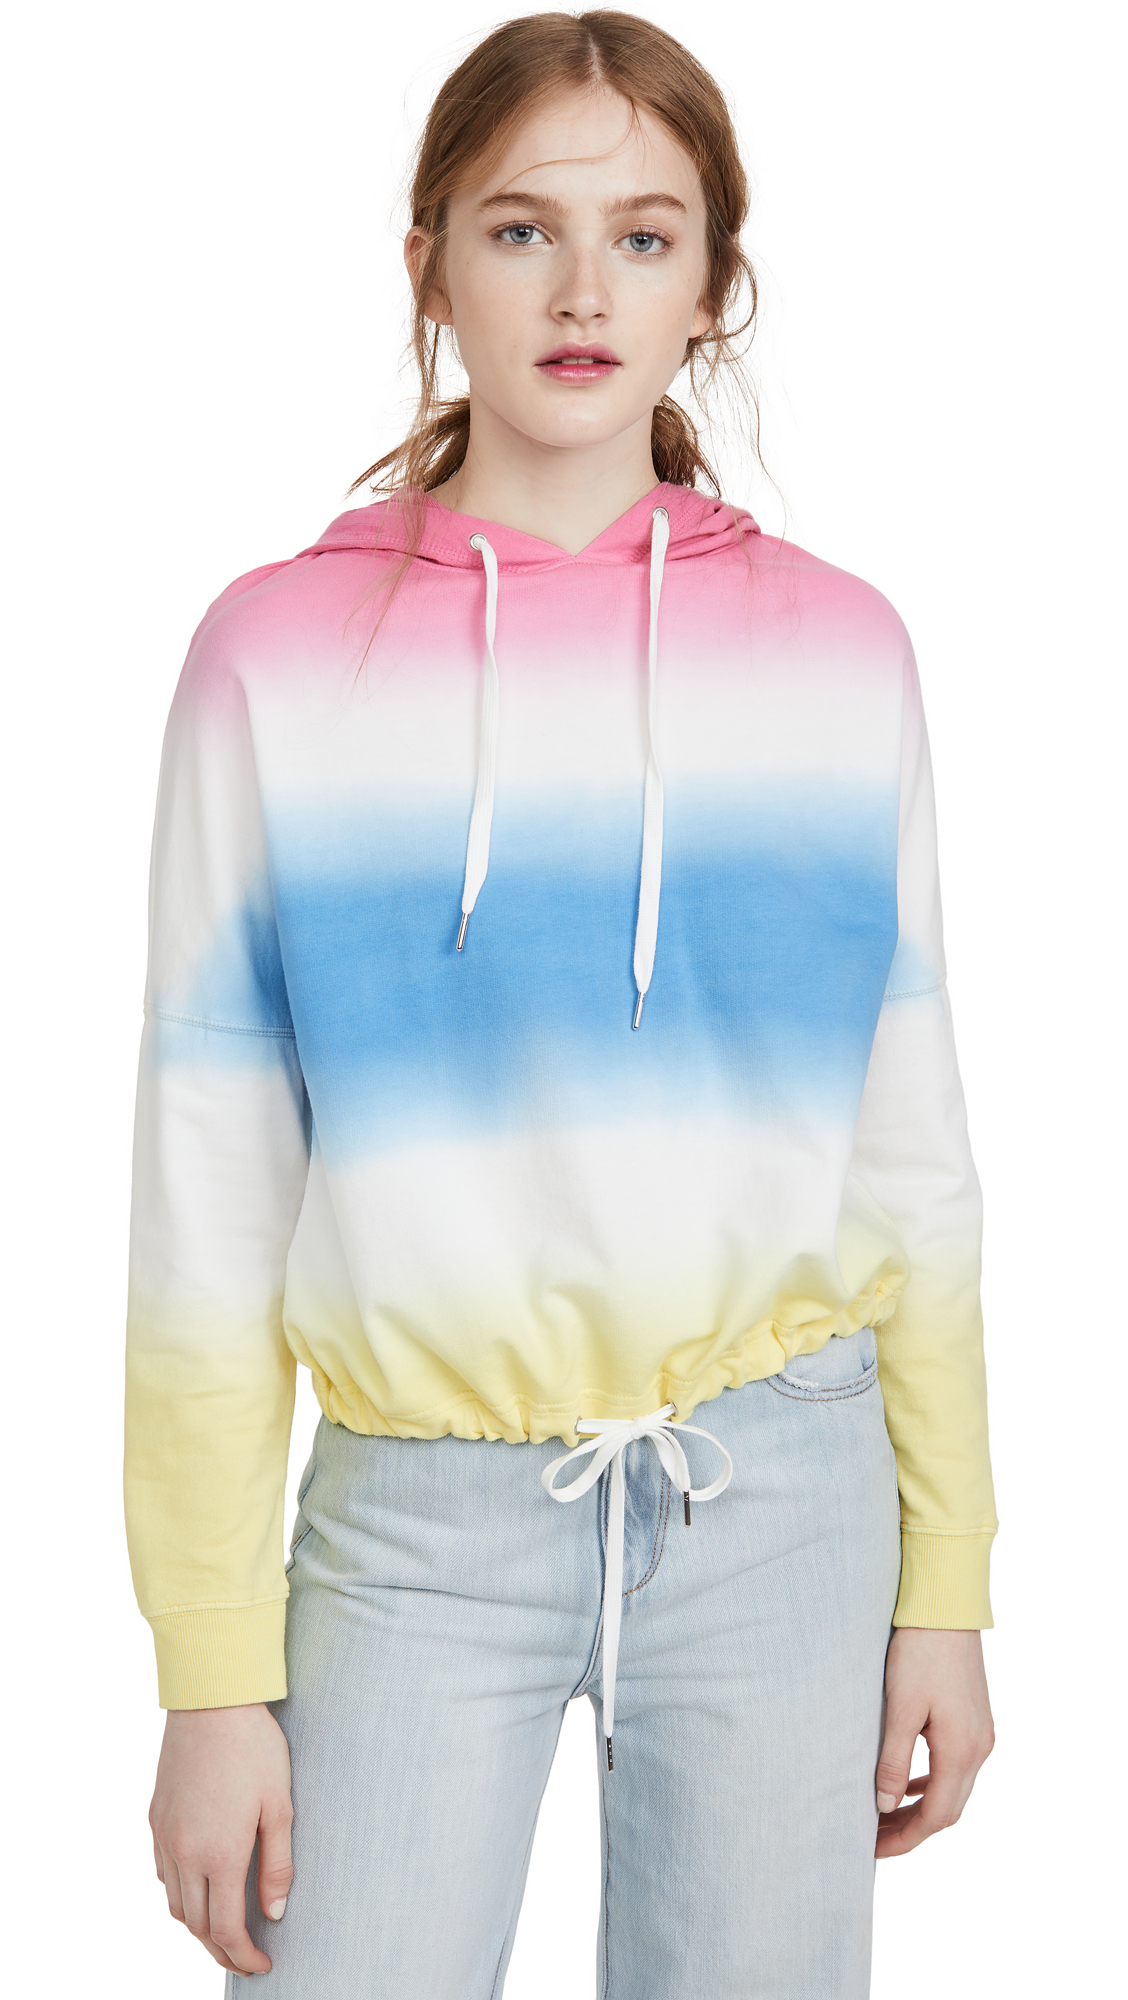 BB Dakota Far Outfit Sweatshirt - 30% Off Sale